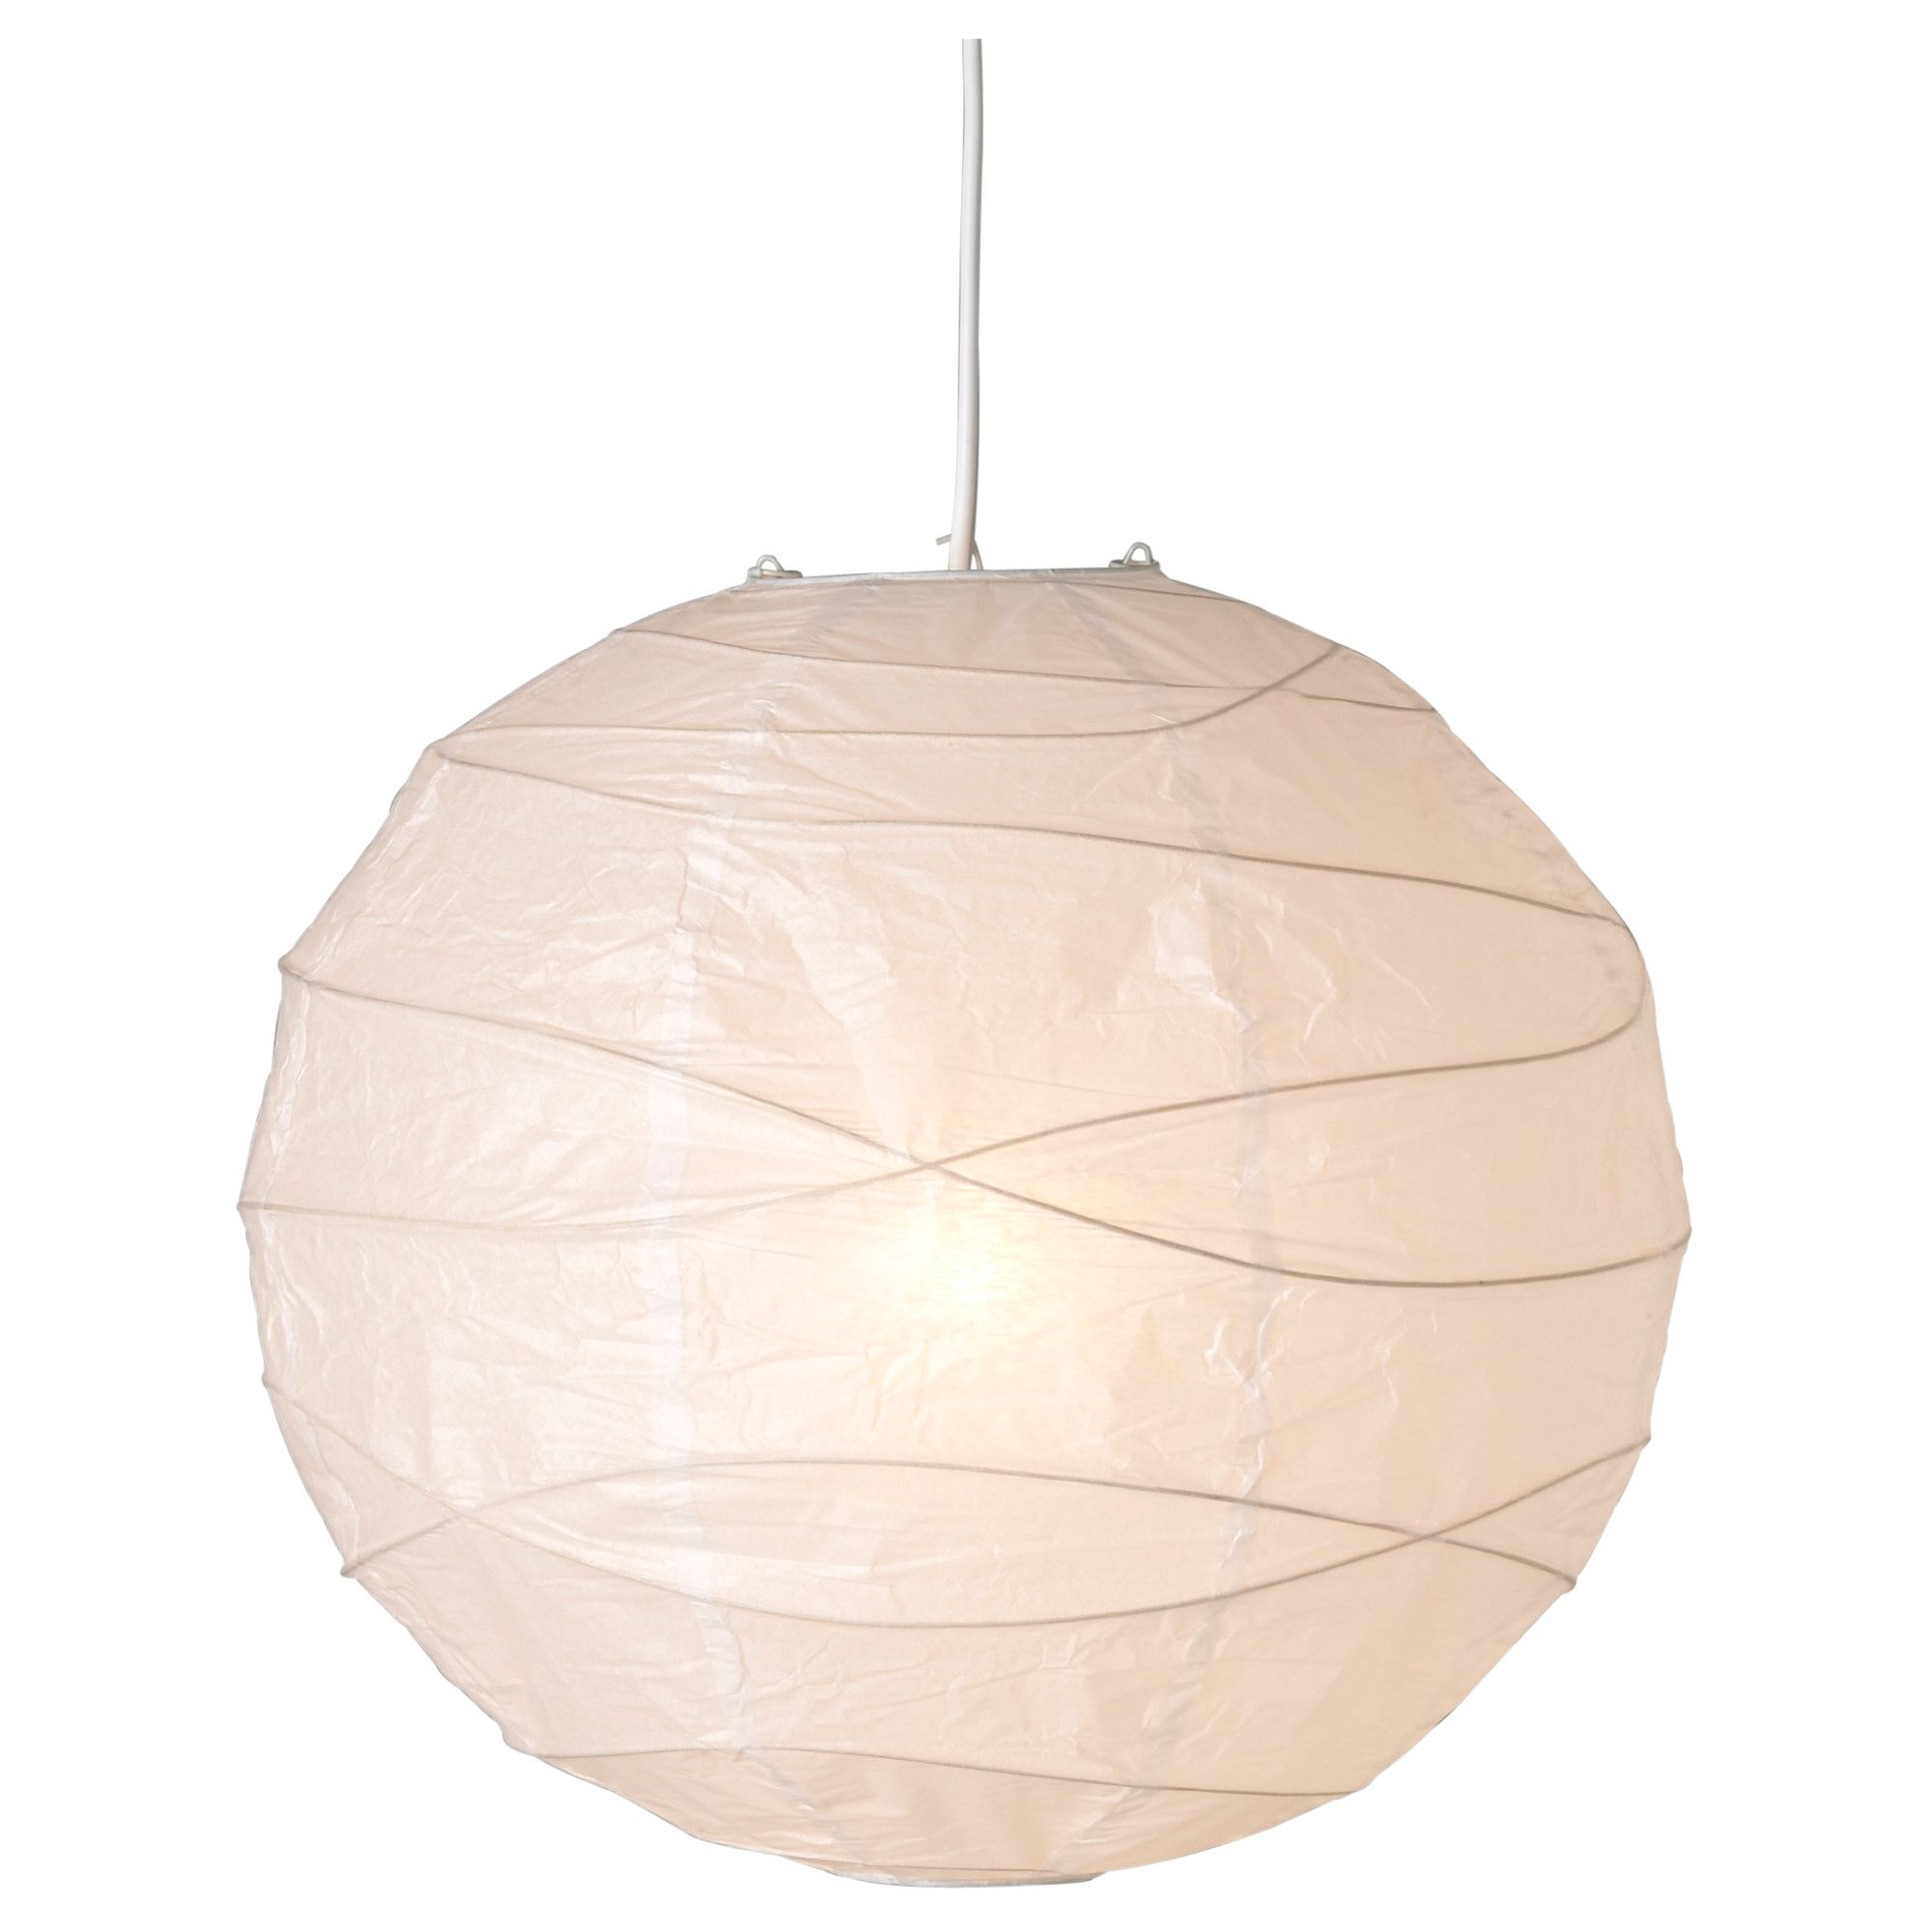 Suspension Simple Ikea Stunning Explore Suspension Ikea Paper Lamps And More With